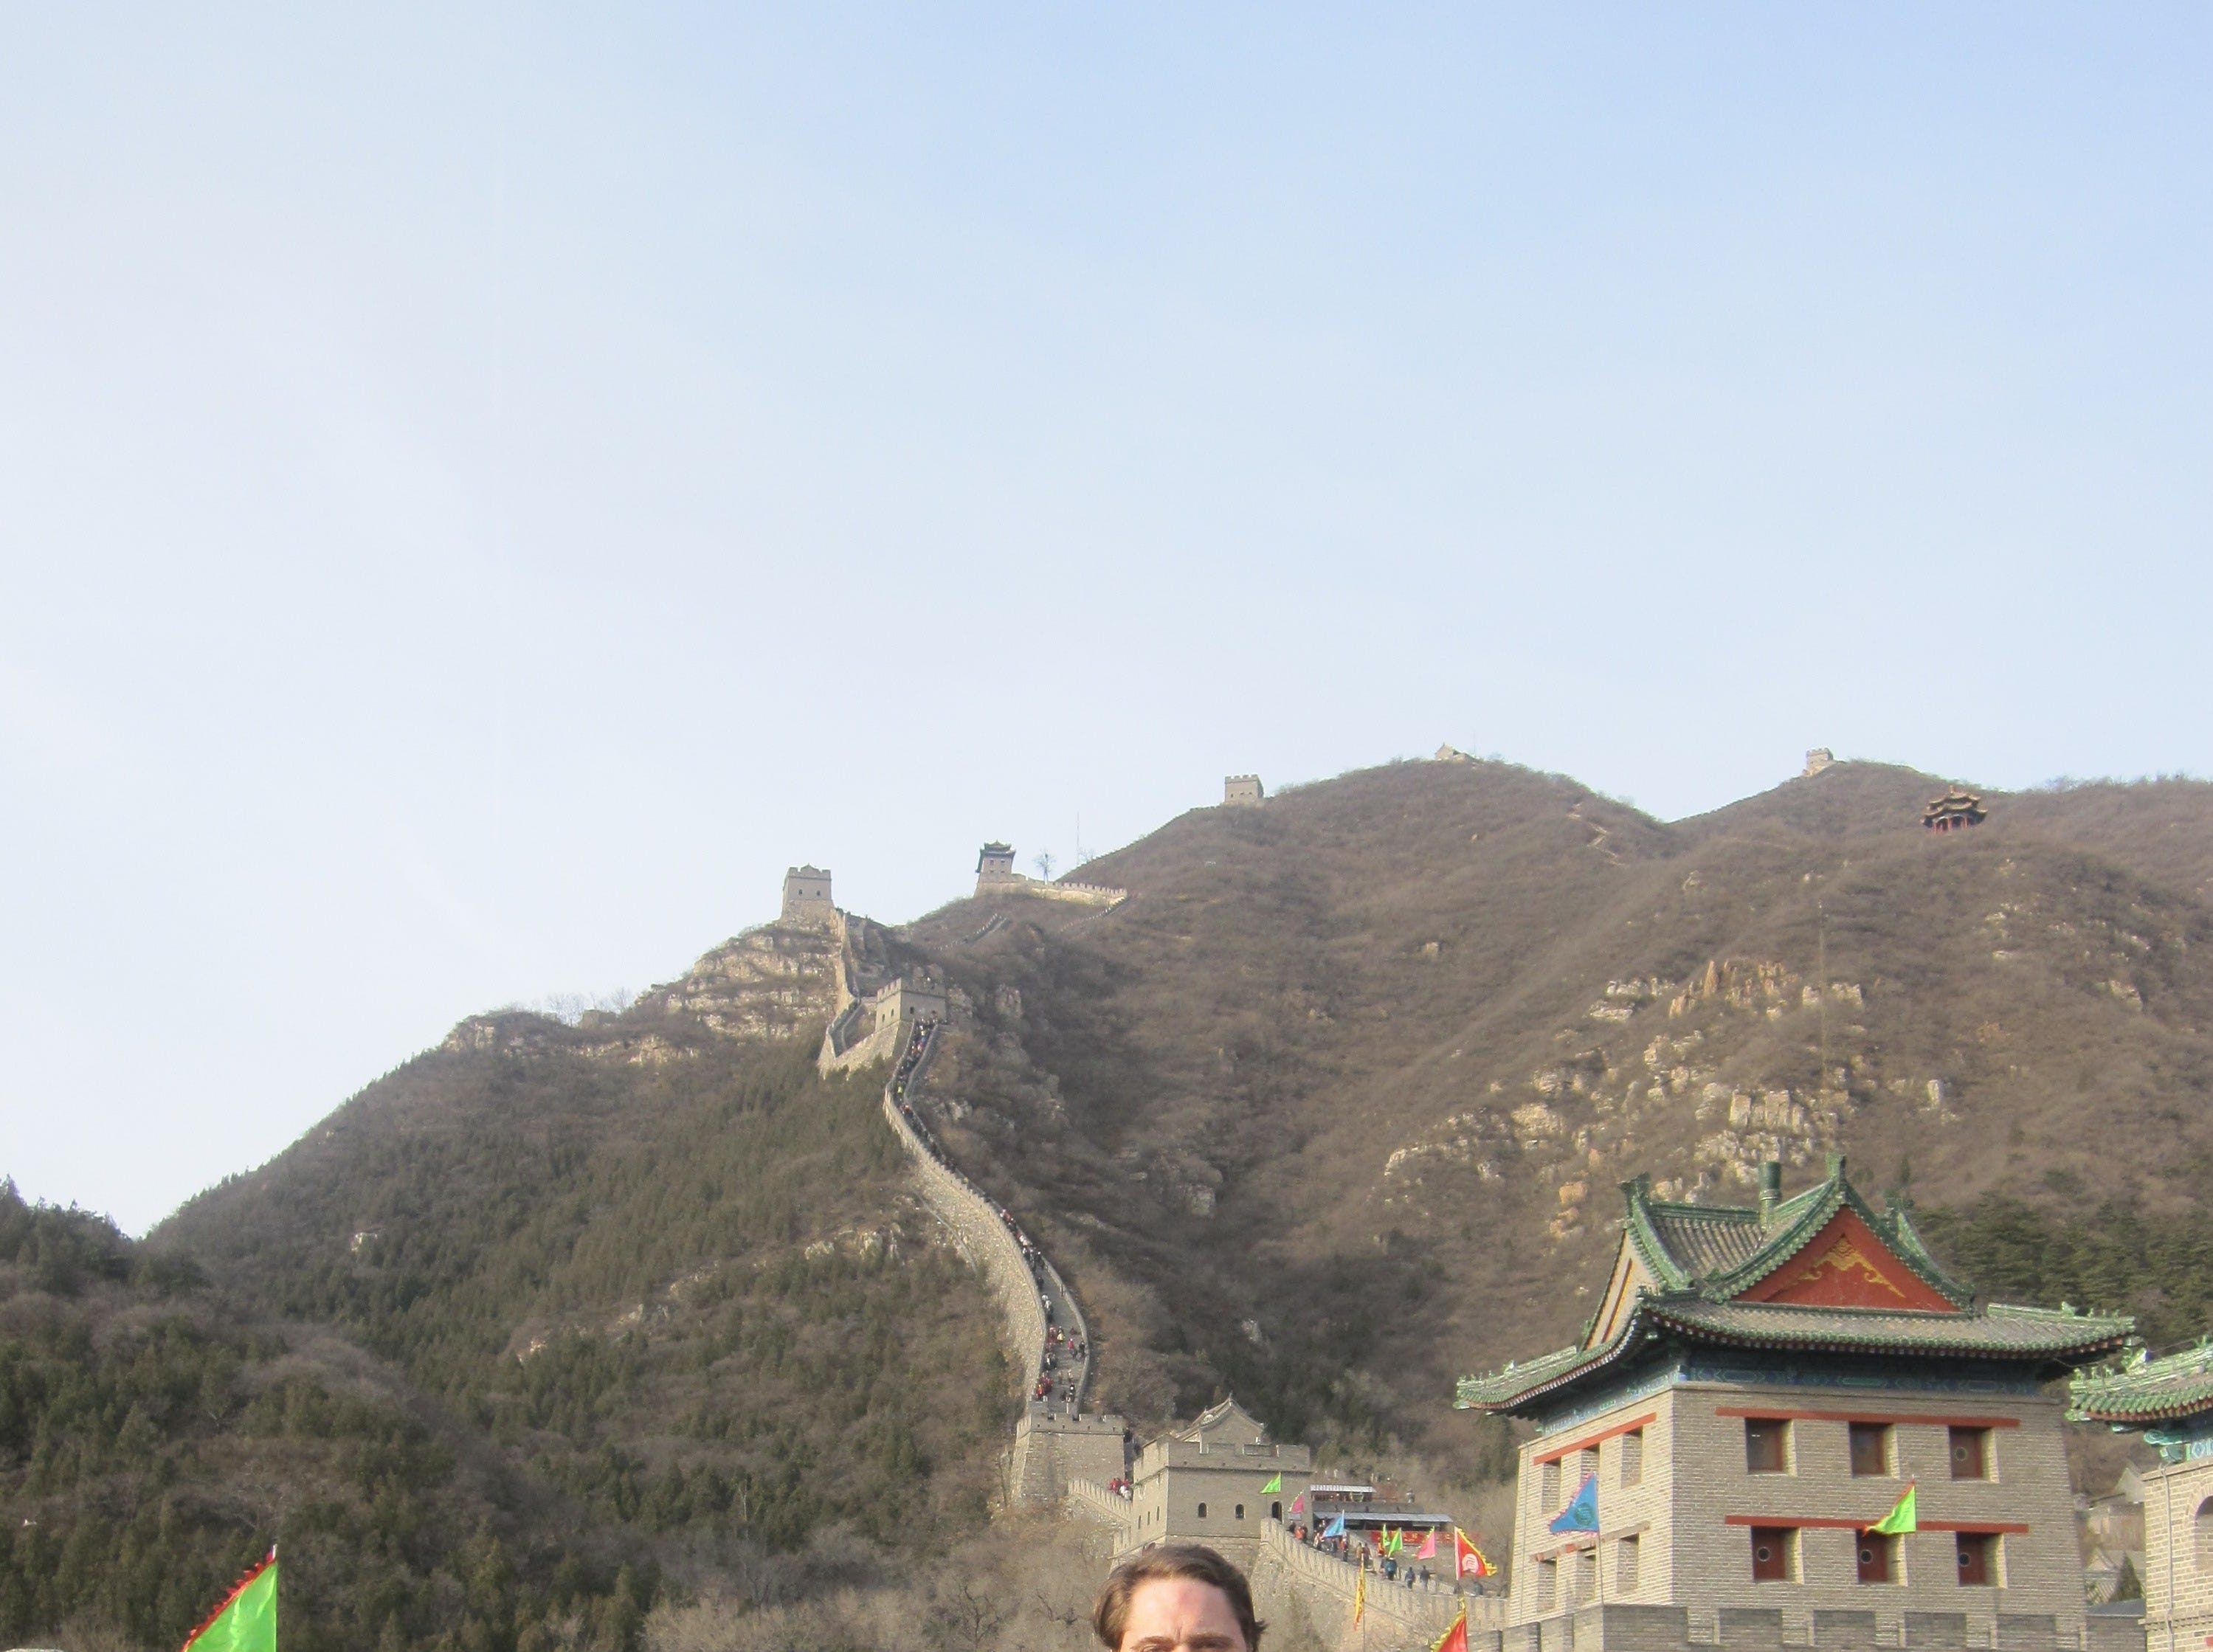 David Key, an assistant professor at Pellissippi State Community College, represented the college in the 2010 Winter Chinese Bridge program. 2011